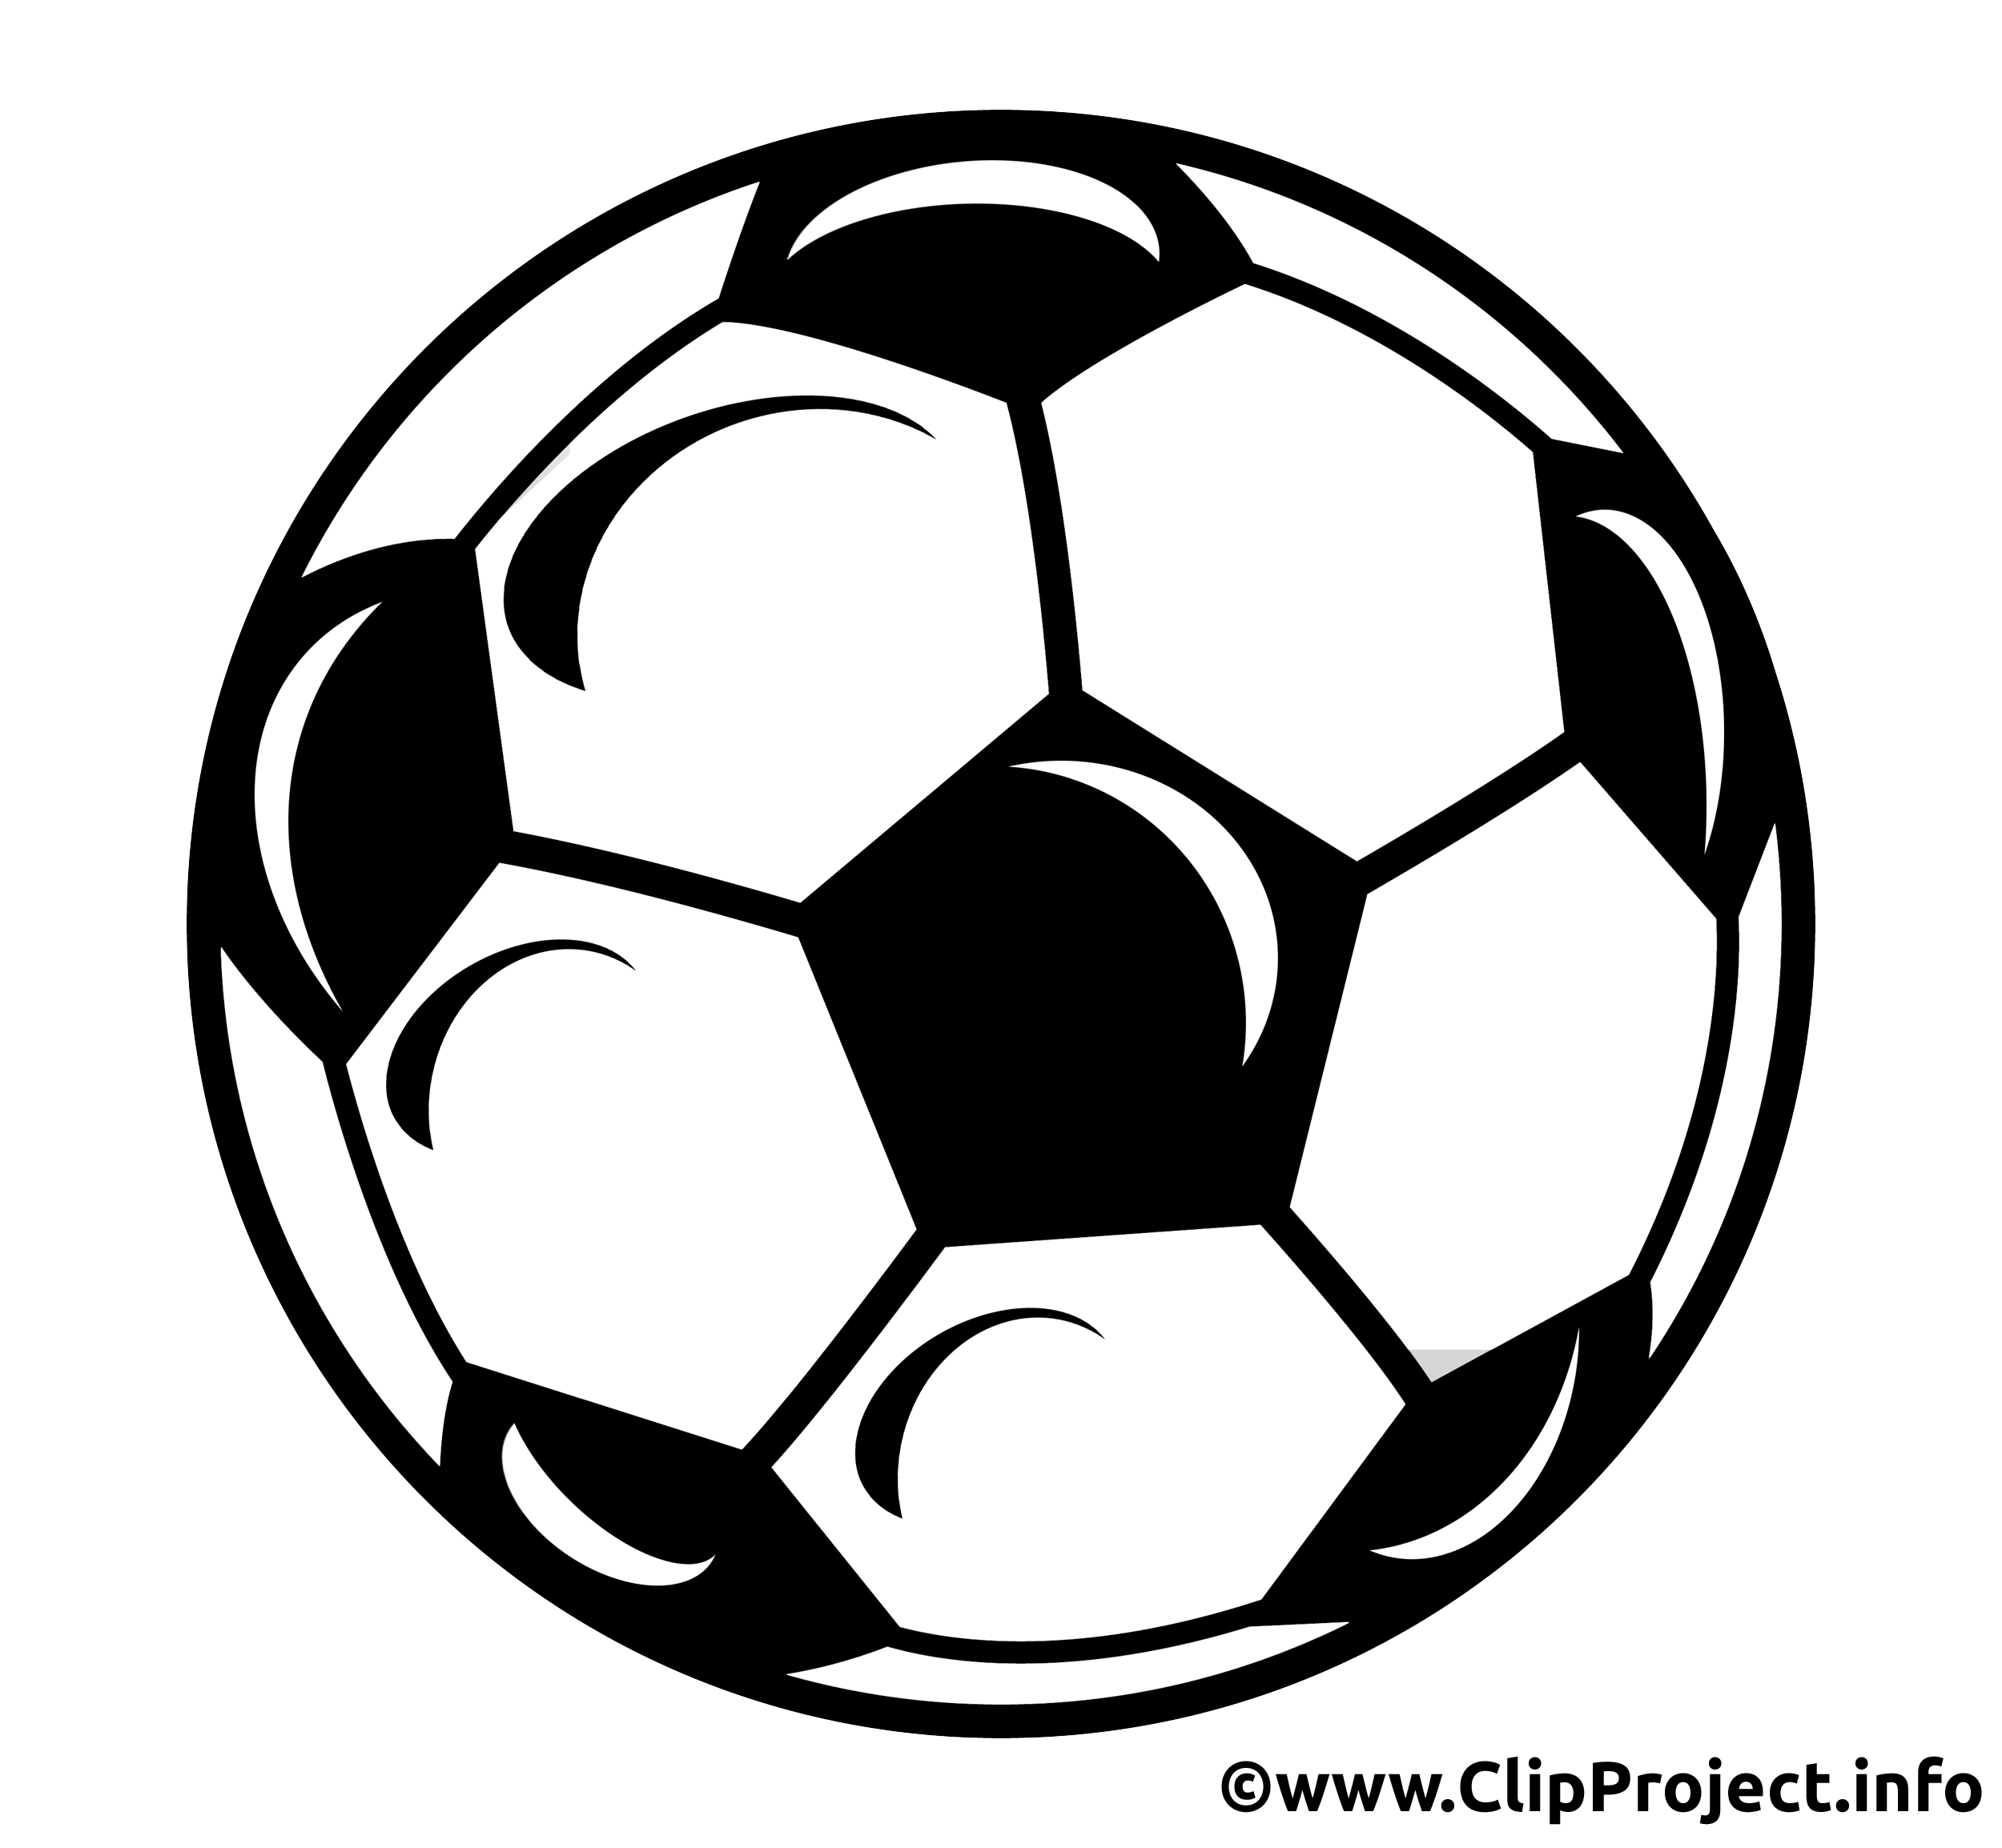 Ballon illustration - Football images